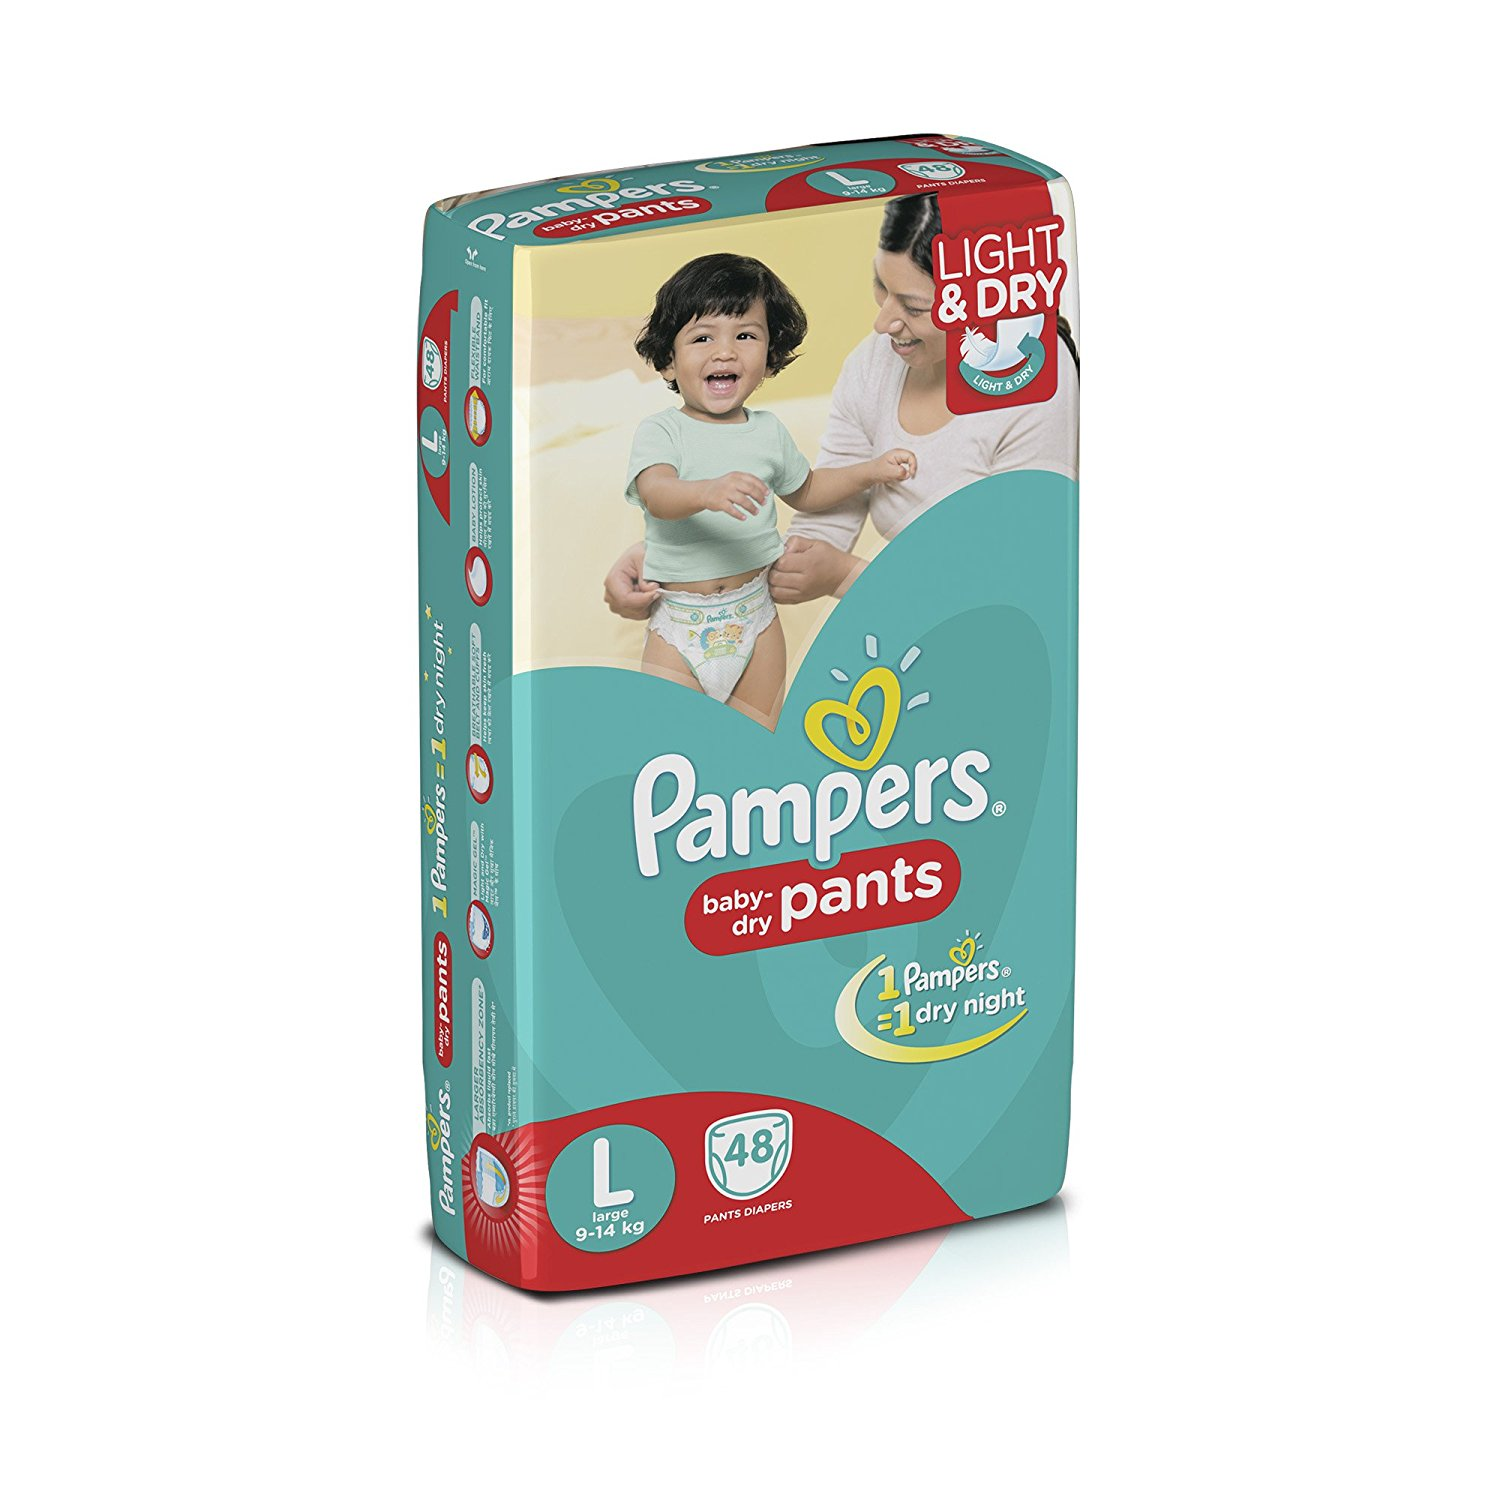 Pampers Large Size Diapers (48 Count)